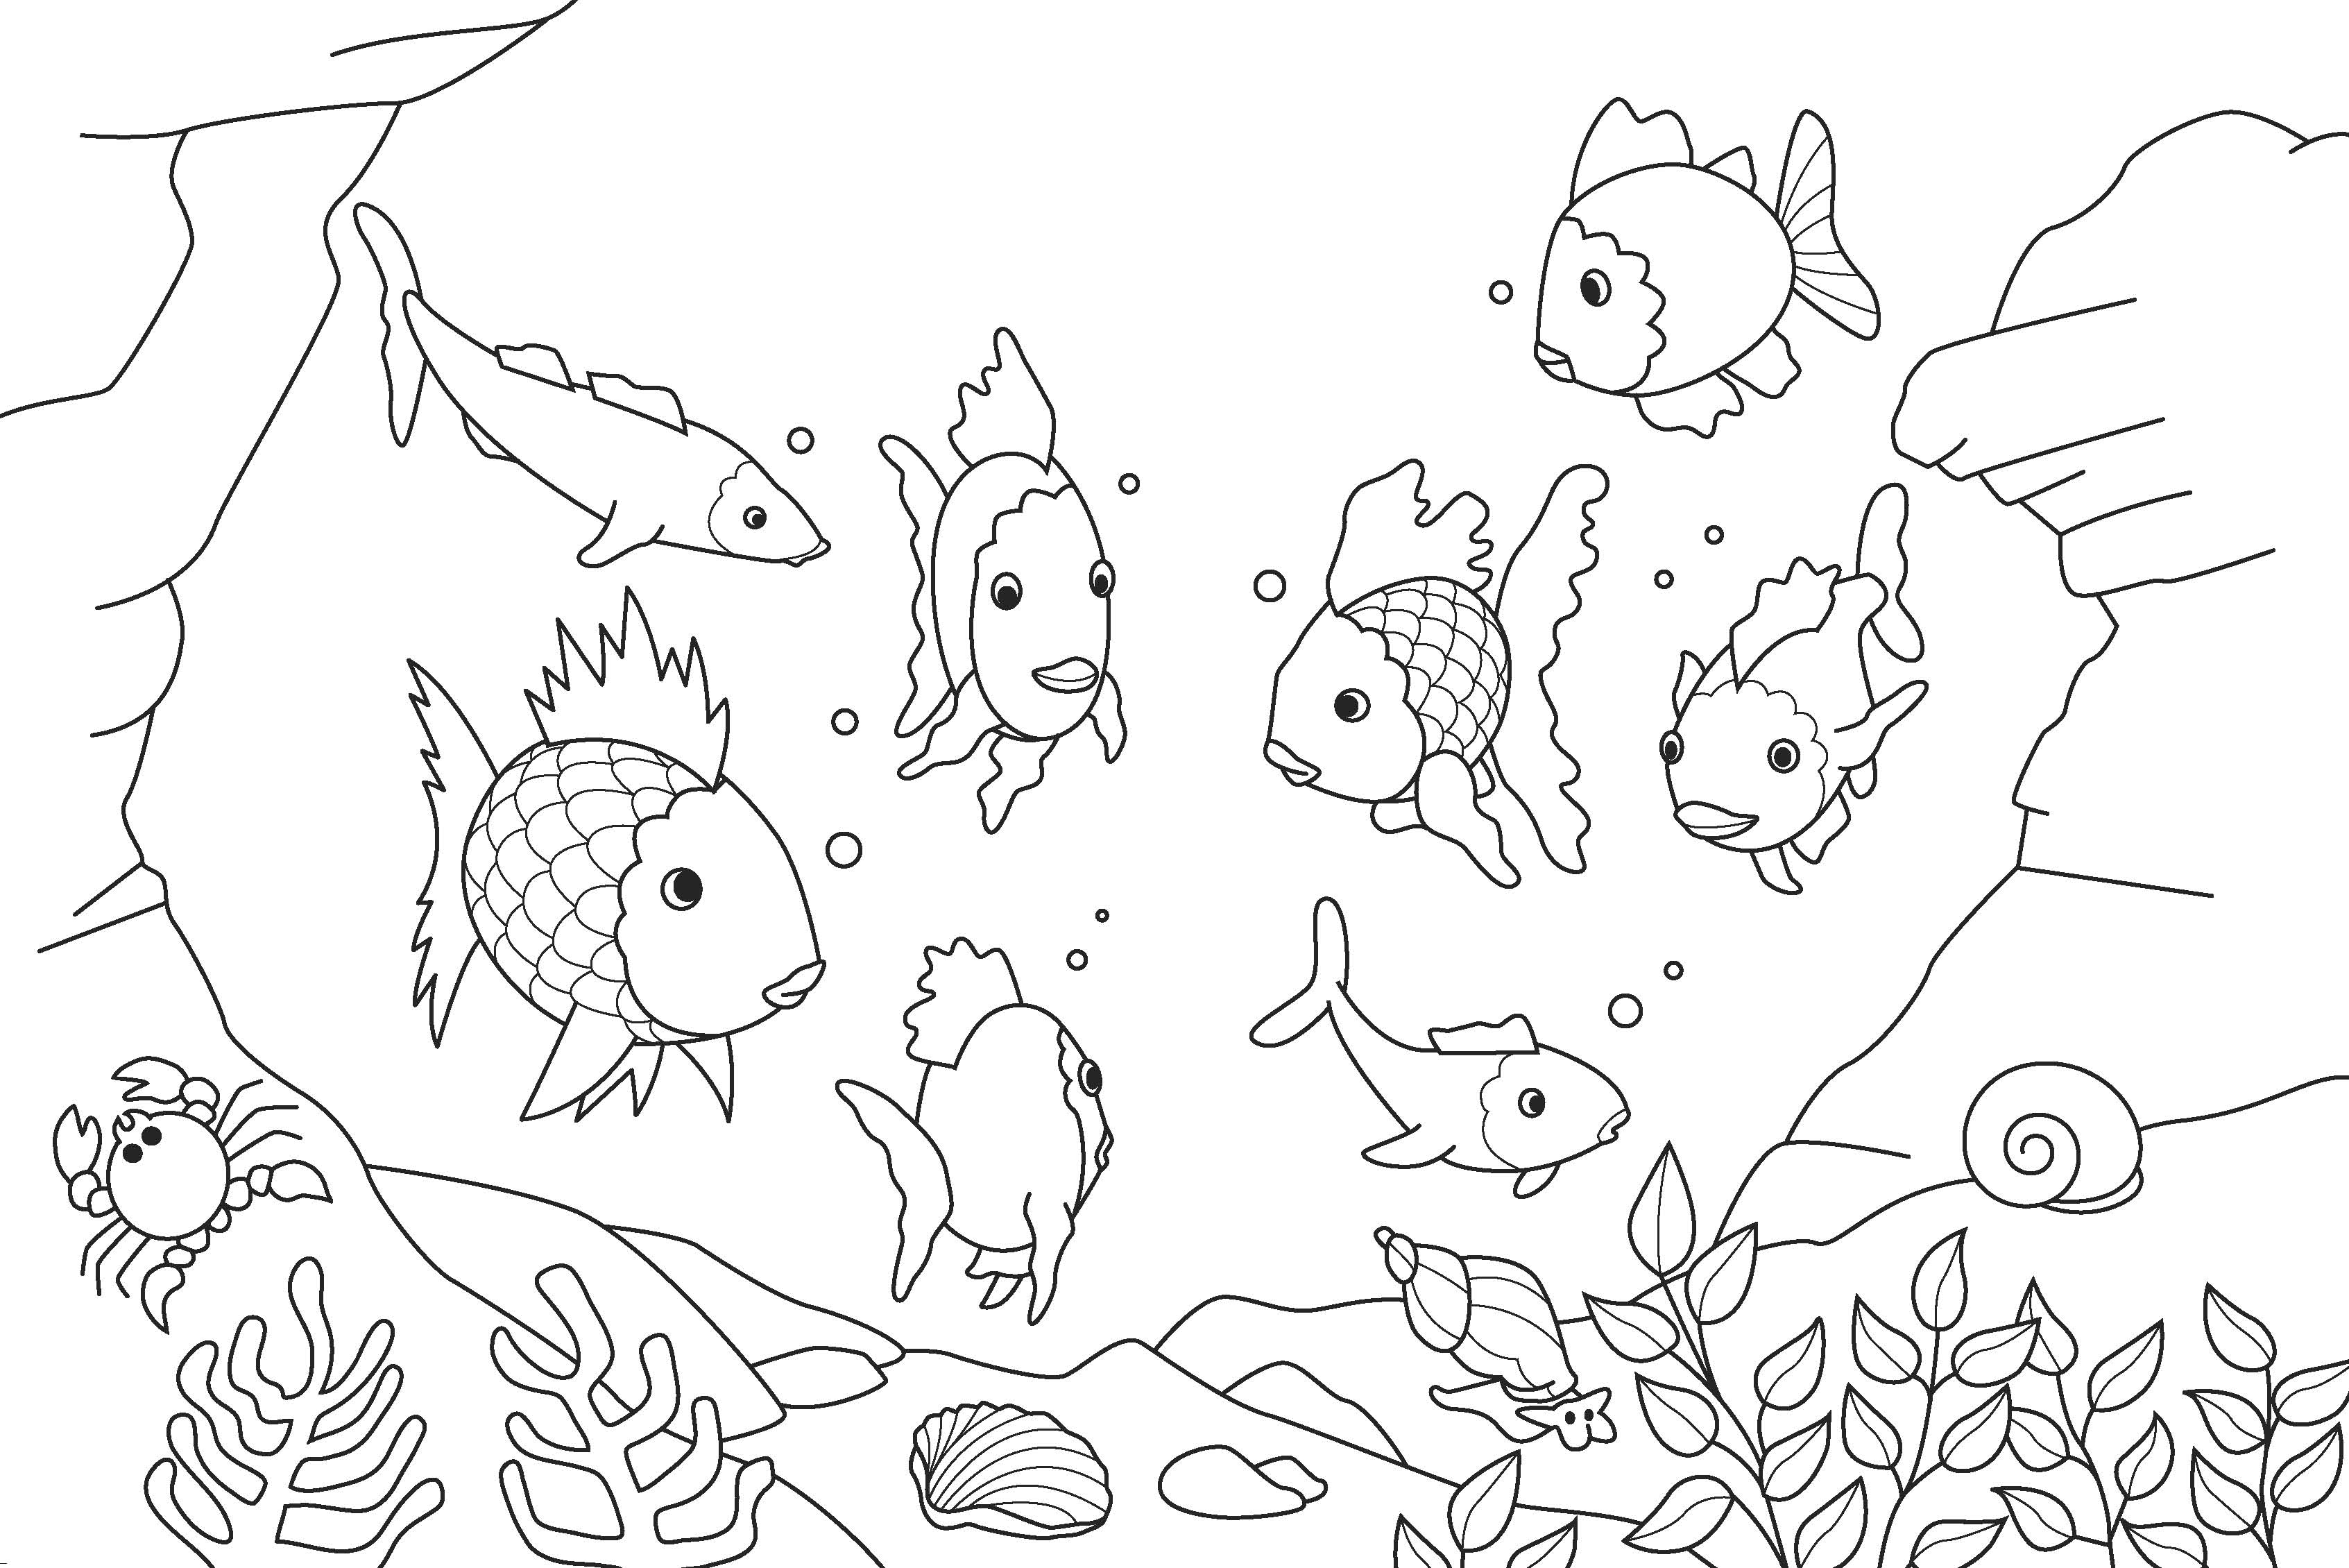 Rainbow Fish Coloring Pages Preschoolers Rainbow Fish Printable Coloring Page Coloring Home